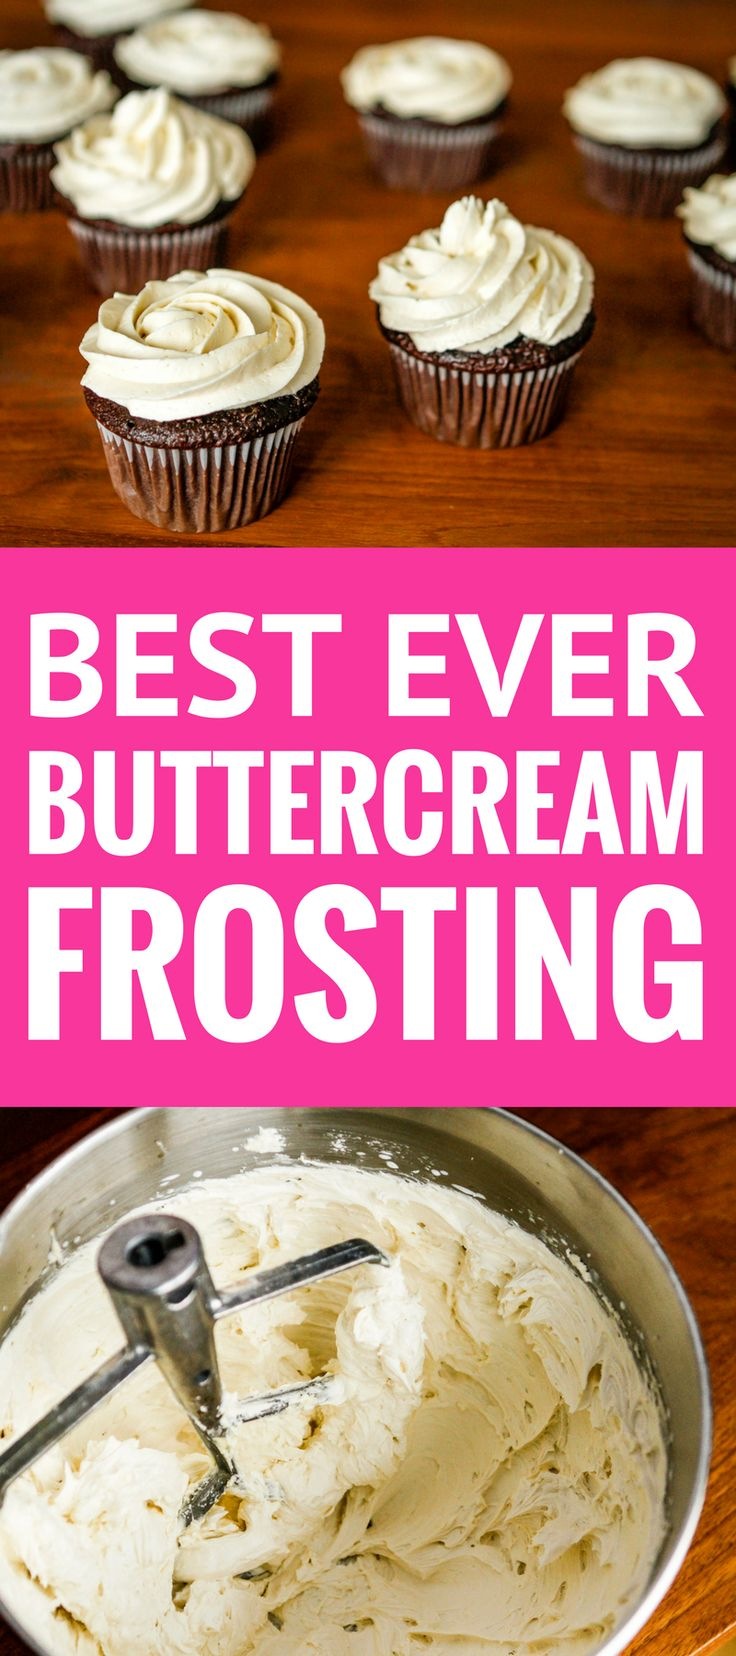 Best Buttercream Frosting Recipe -- Pinned over 100,000 times! Super creamy and fluffy, not too sweet, this is quite possibly the BEST buttercream frosting recipe ever... A must try! | vanilla buttercream frosting | homemade buttercream frosting | whipped cream frosting recipe | powdered sugar icing recipe | fluffy buttercream frosting | find the recipe on unsophisticook.com #buttercream #buttercreamfrosting #bestbuttercream